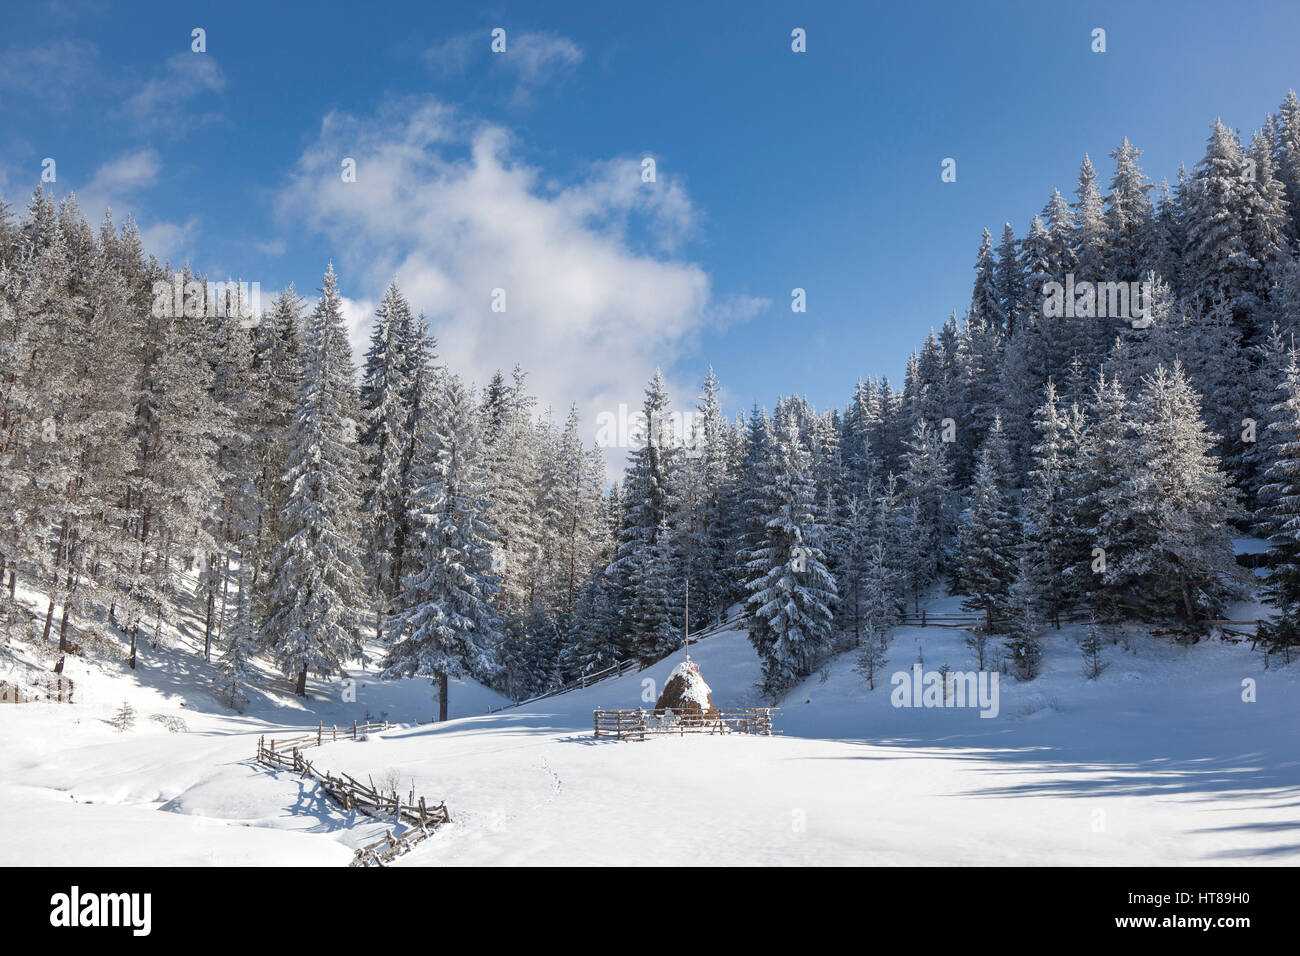 Winter landscape with snowy pine trees and a haystack covered with snow in a small glade. Stock Photo